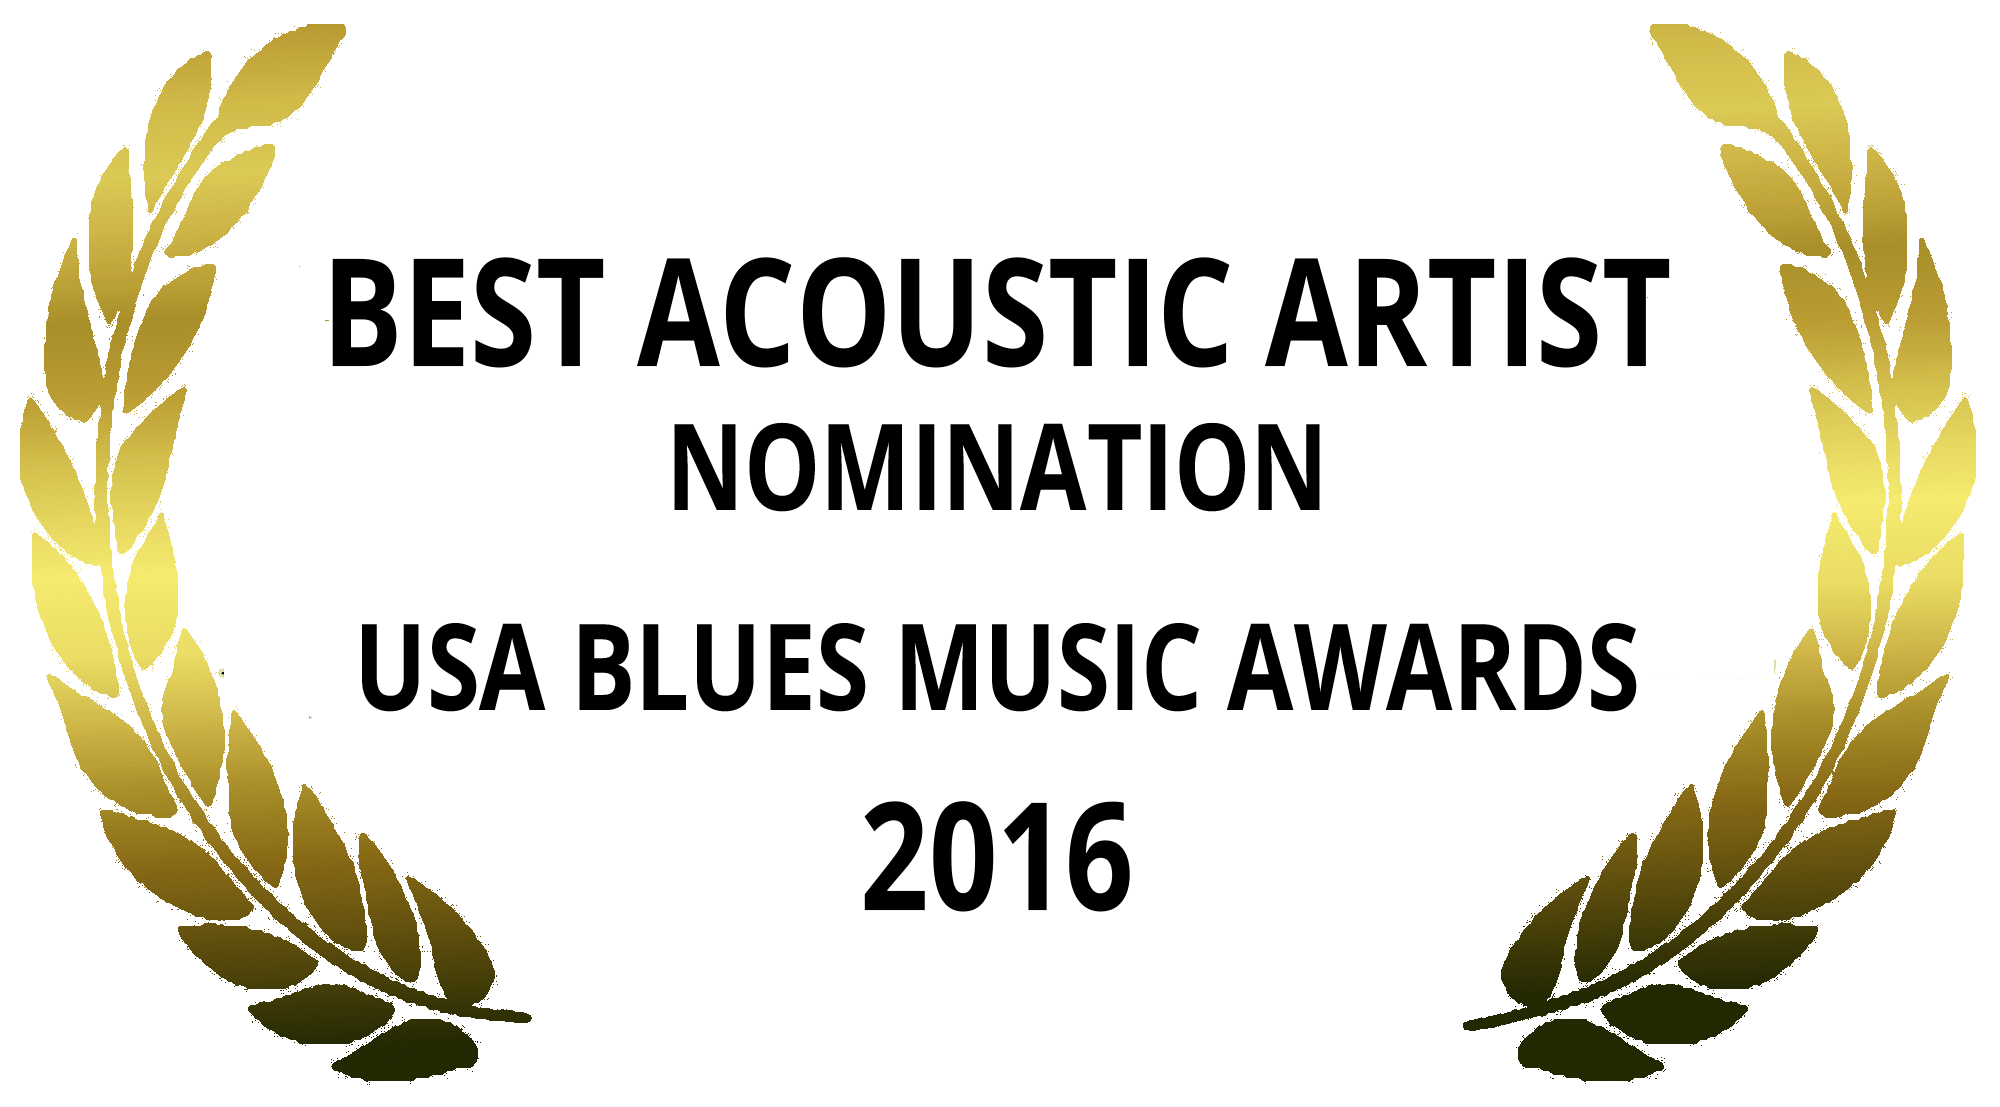 Best Acoustic Artist Nomination 2016